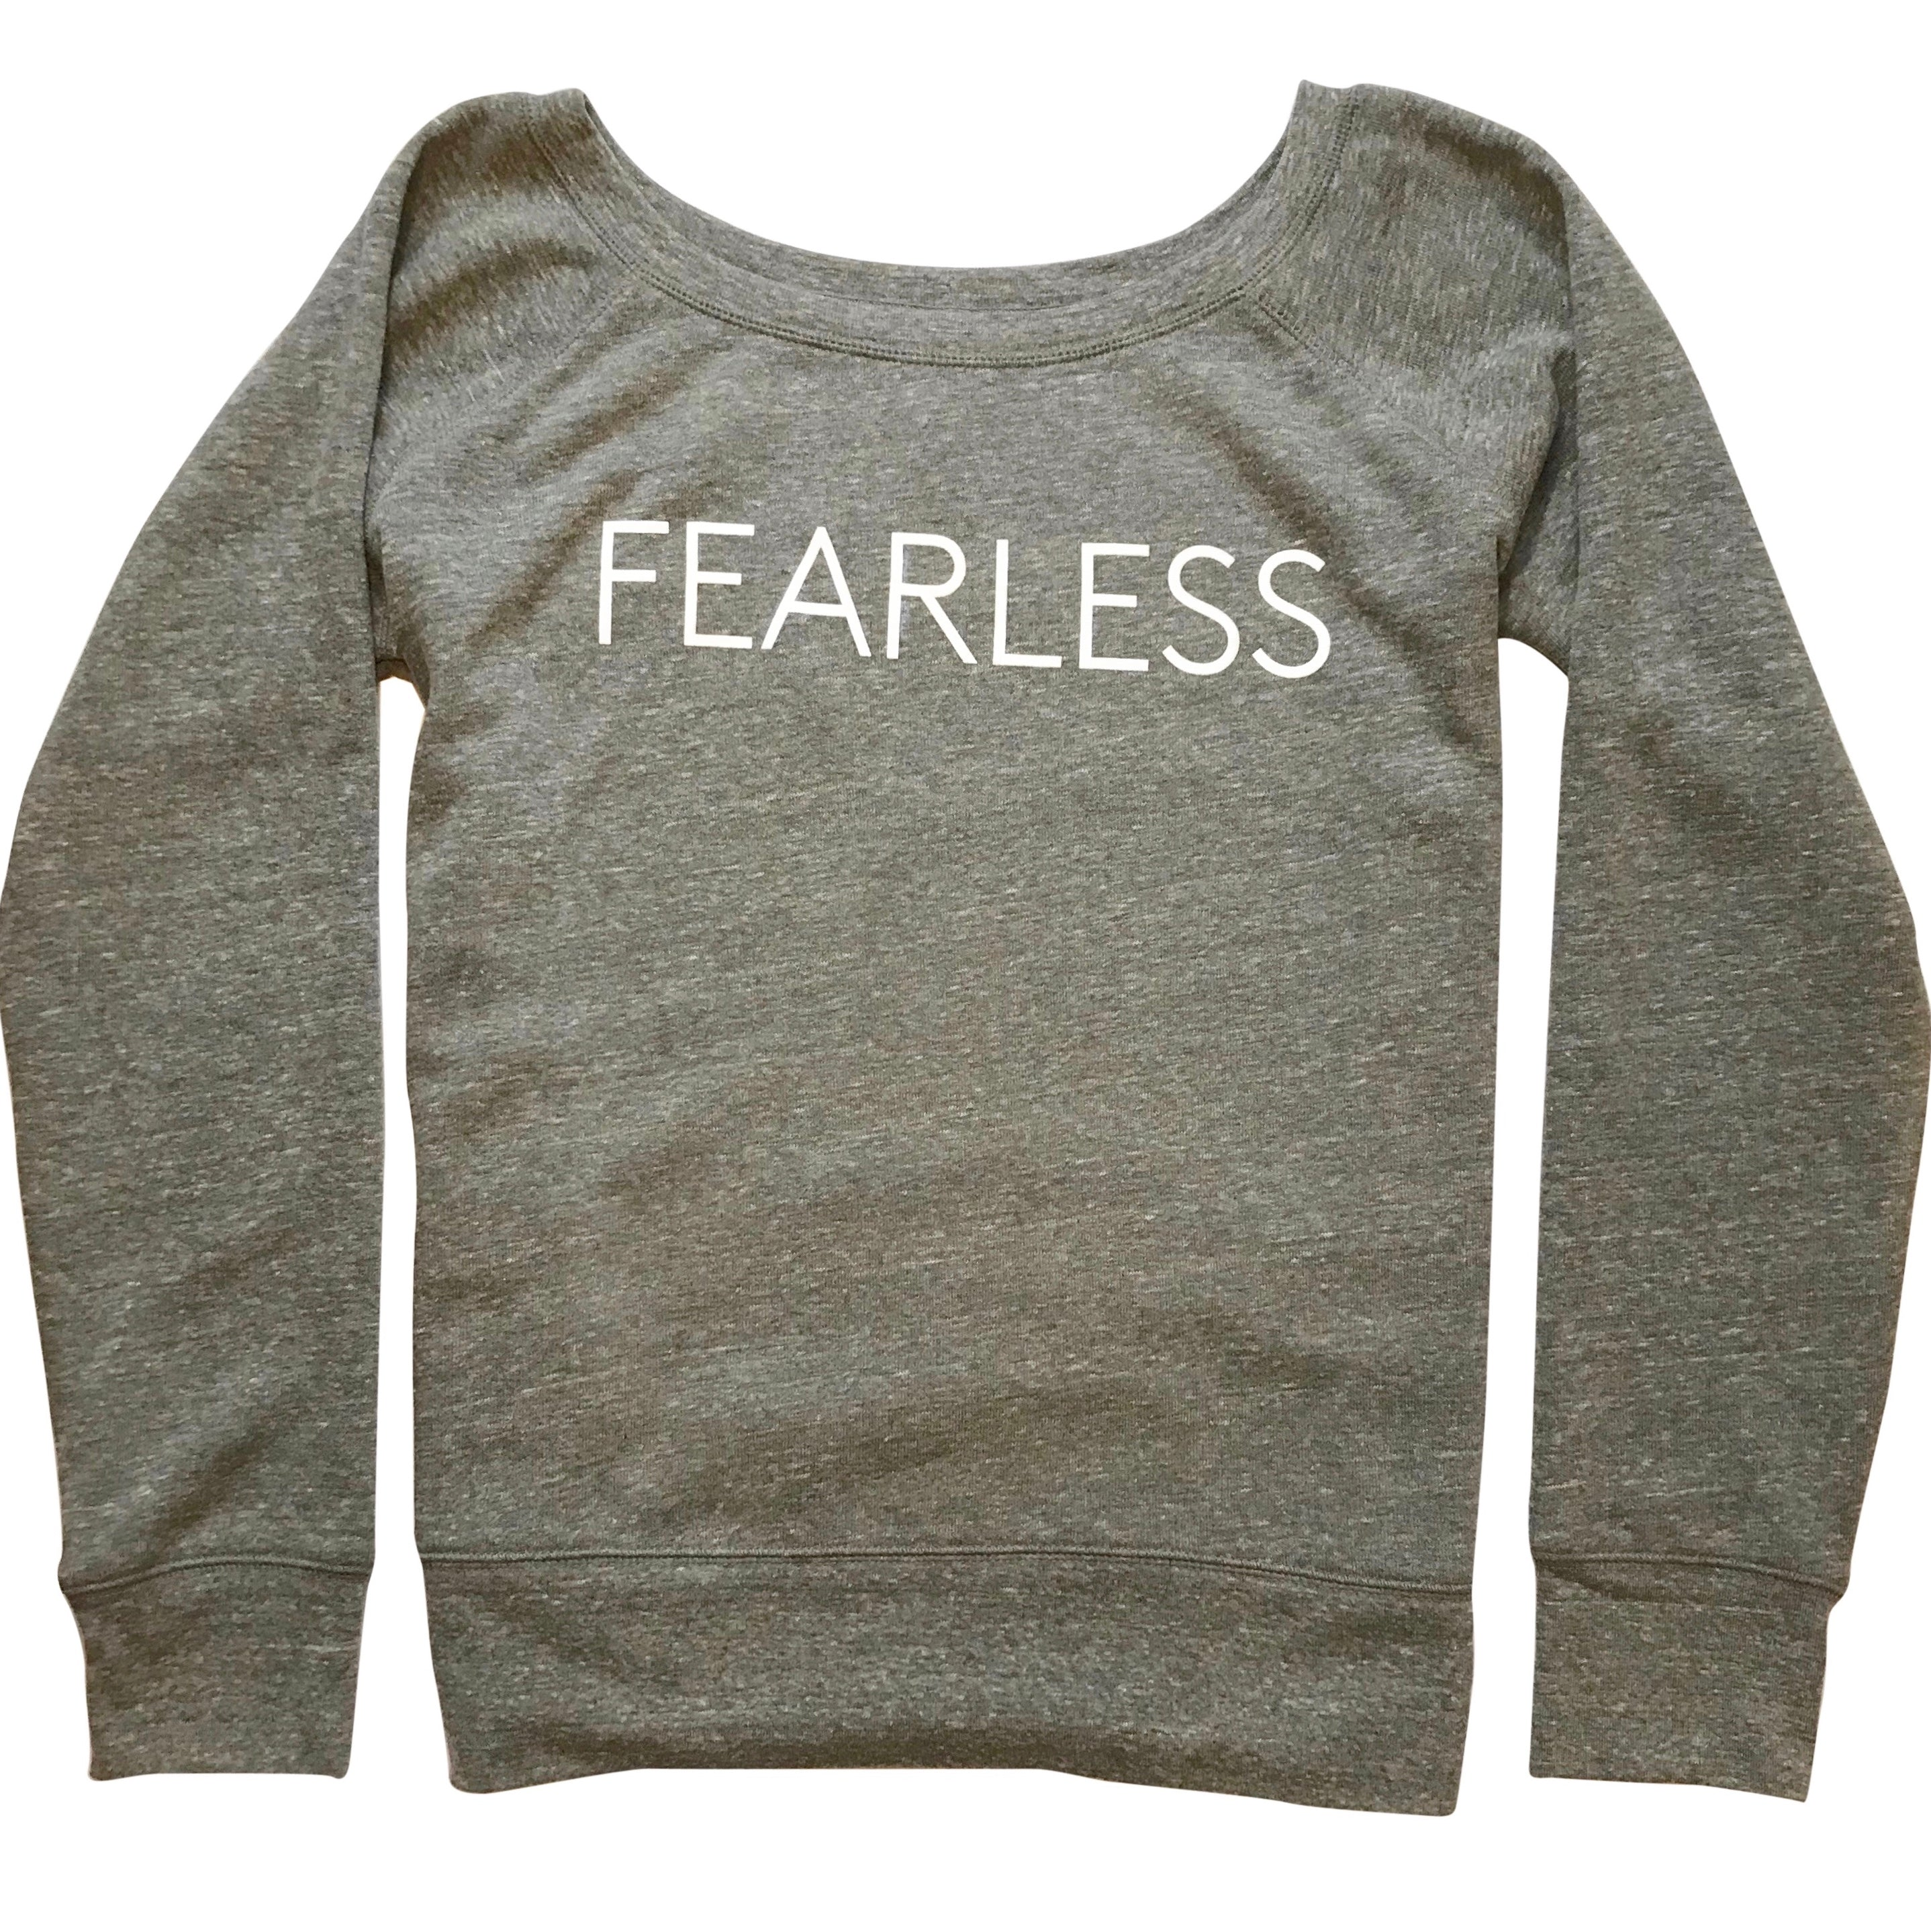 Five Faves F-Word-Tee Sweatshirt Fearless Front